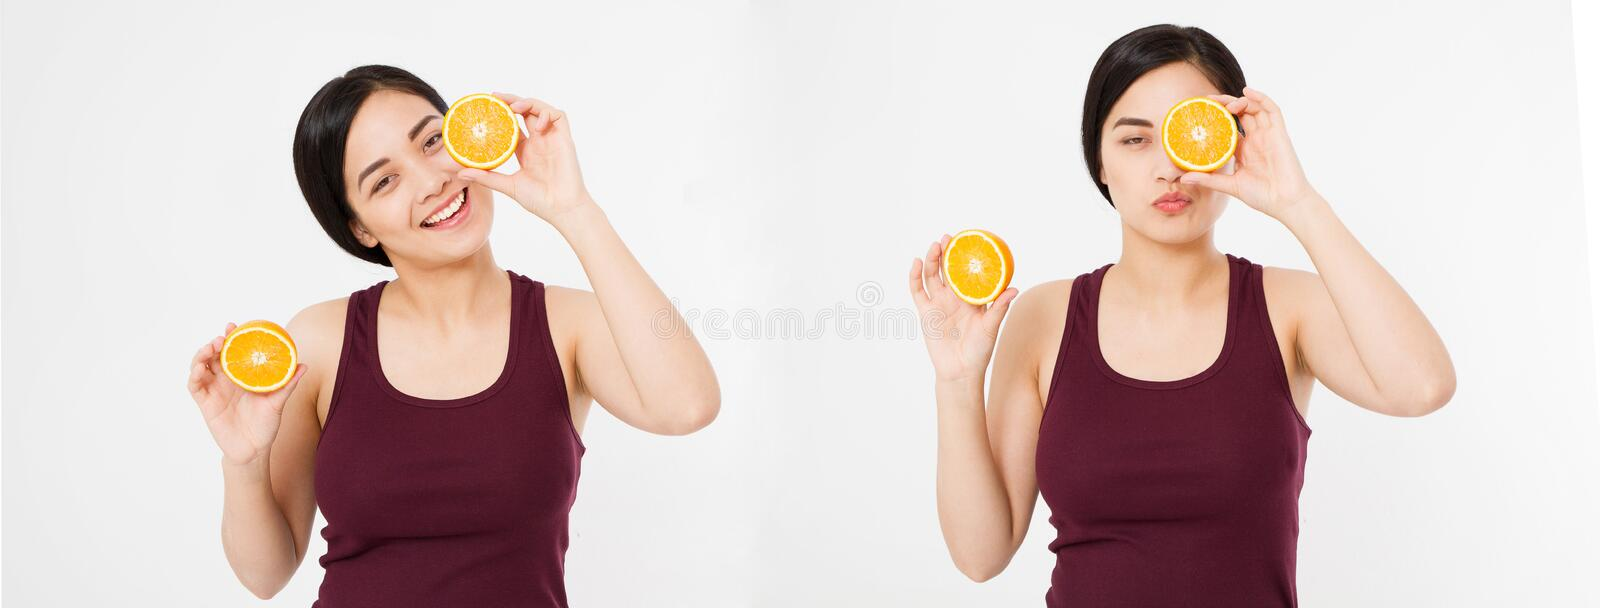 Beauty asian japanese woman hold Oranges.Beauty concept. Beautiful Joyful teen girl with freckles, funny red hairstyle and yellow royalty free stock photo